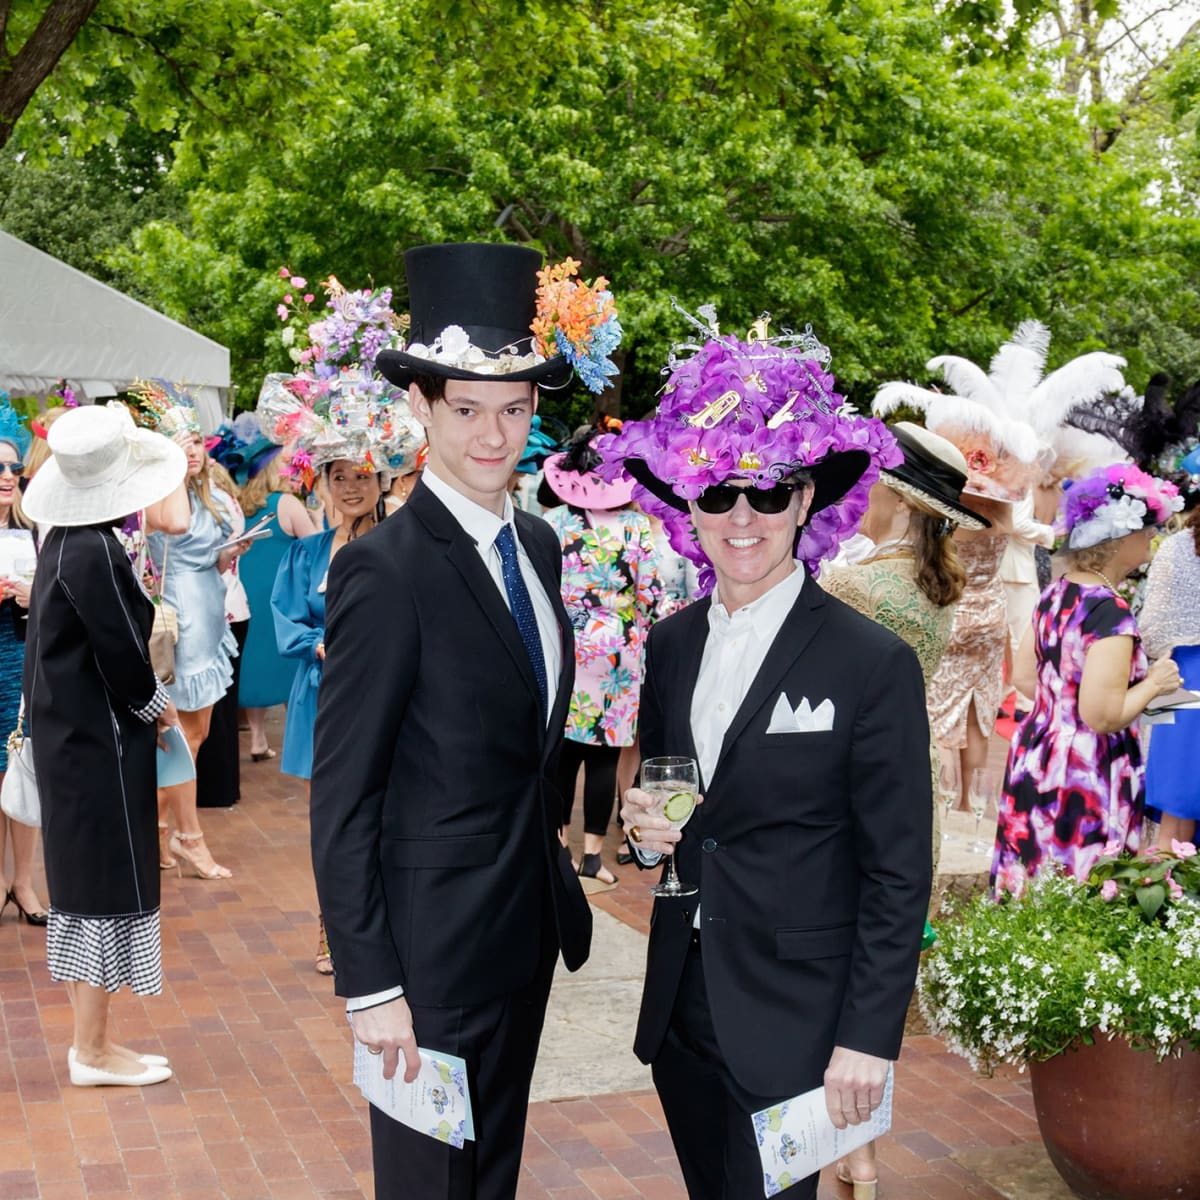 Mad Hatters 2018, Sterling Chambers, Chris Ayton